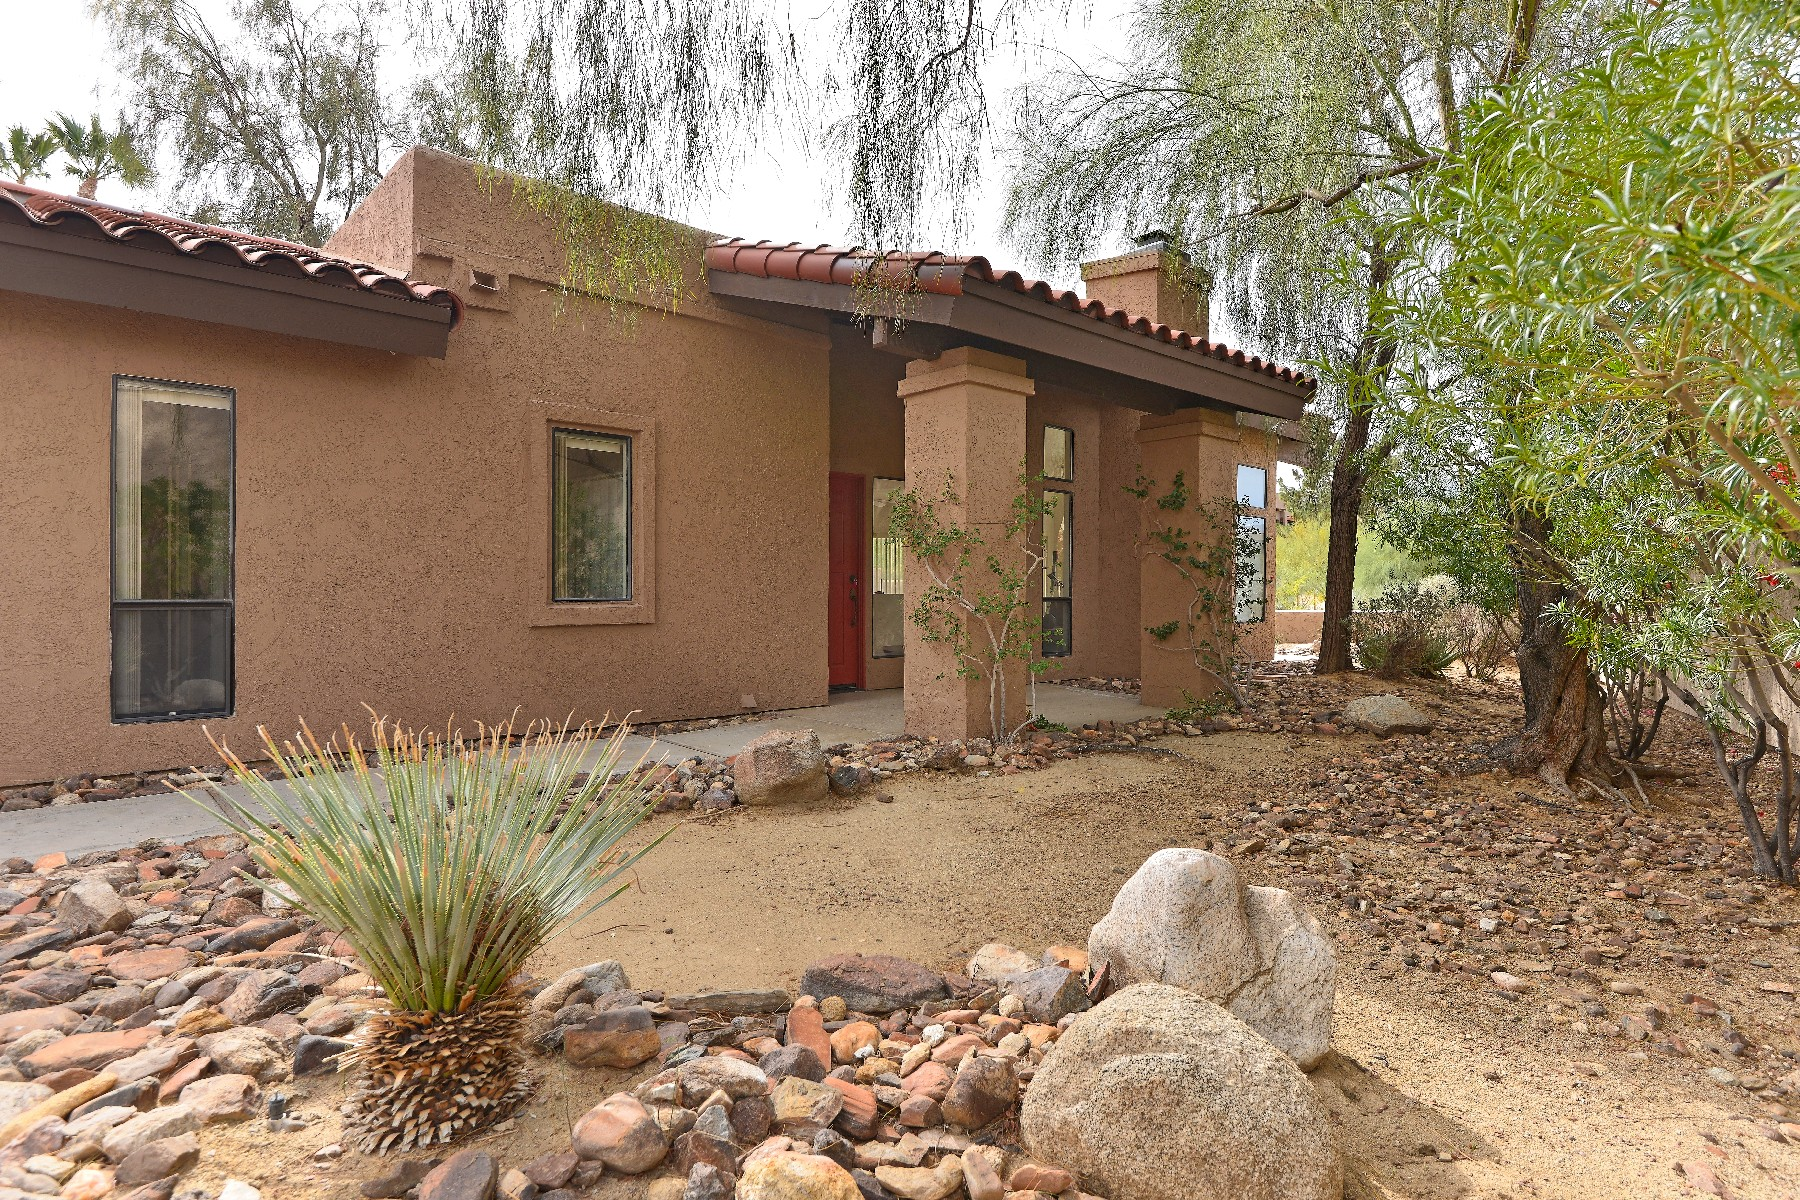 Additional photo for property listing at 3208 Roadrunner Drive So 3208 Roadrunner Drive South Borrego Springs, Калифорния 92004 Соединенные Штаты